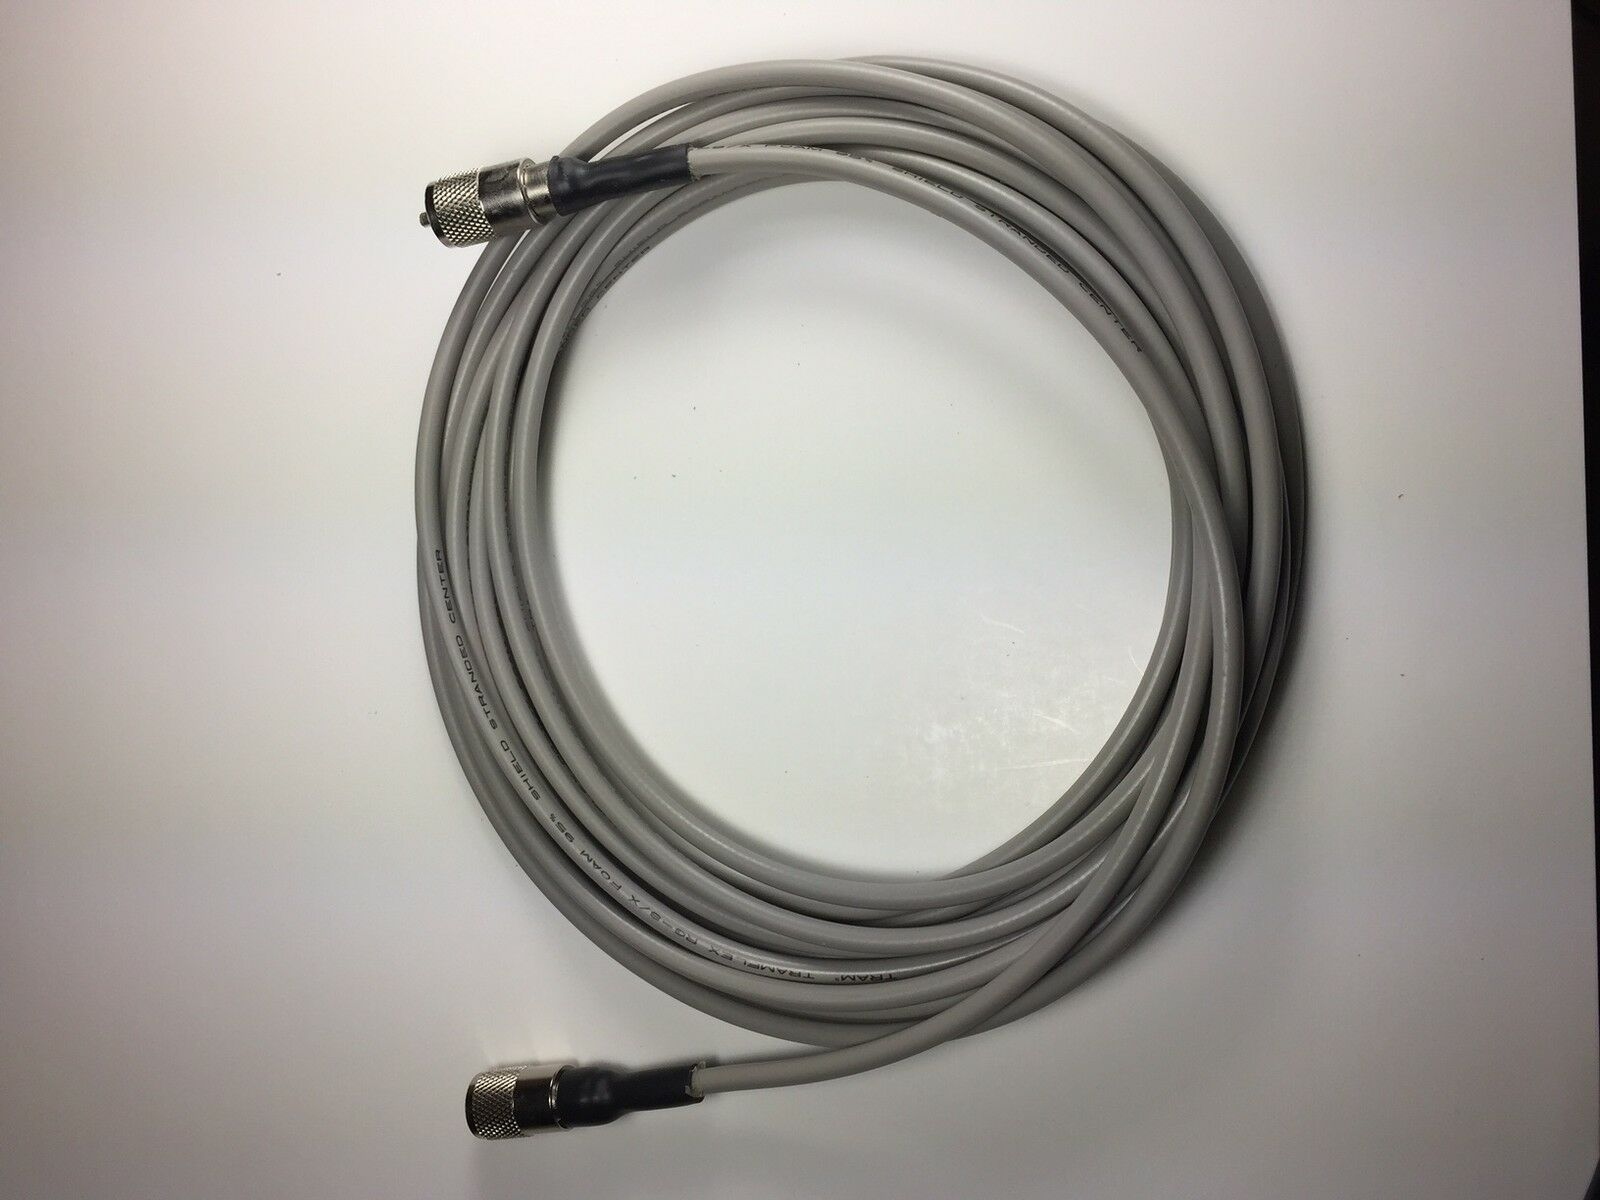 RG-8X COAX CABLE JUMPER 25 FT FOOT SEALED PL-259s USA MADE PROFESSIONAL CB HAM. Available Now for 2495.00